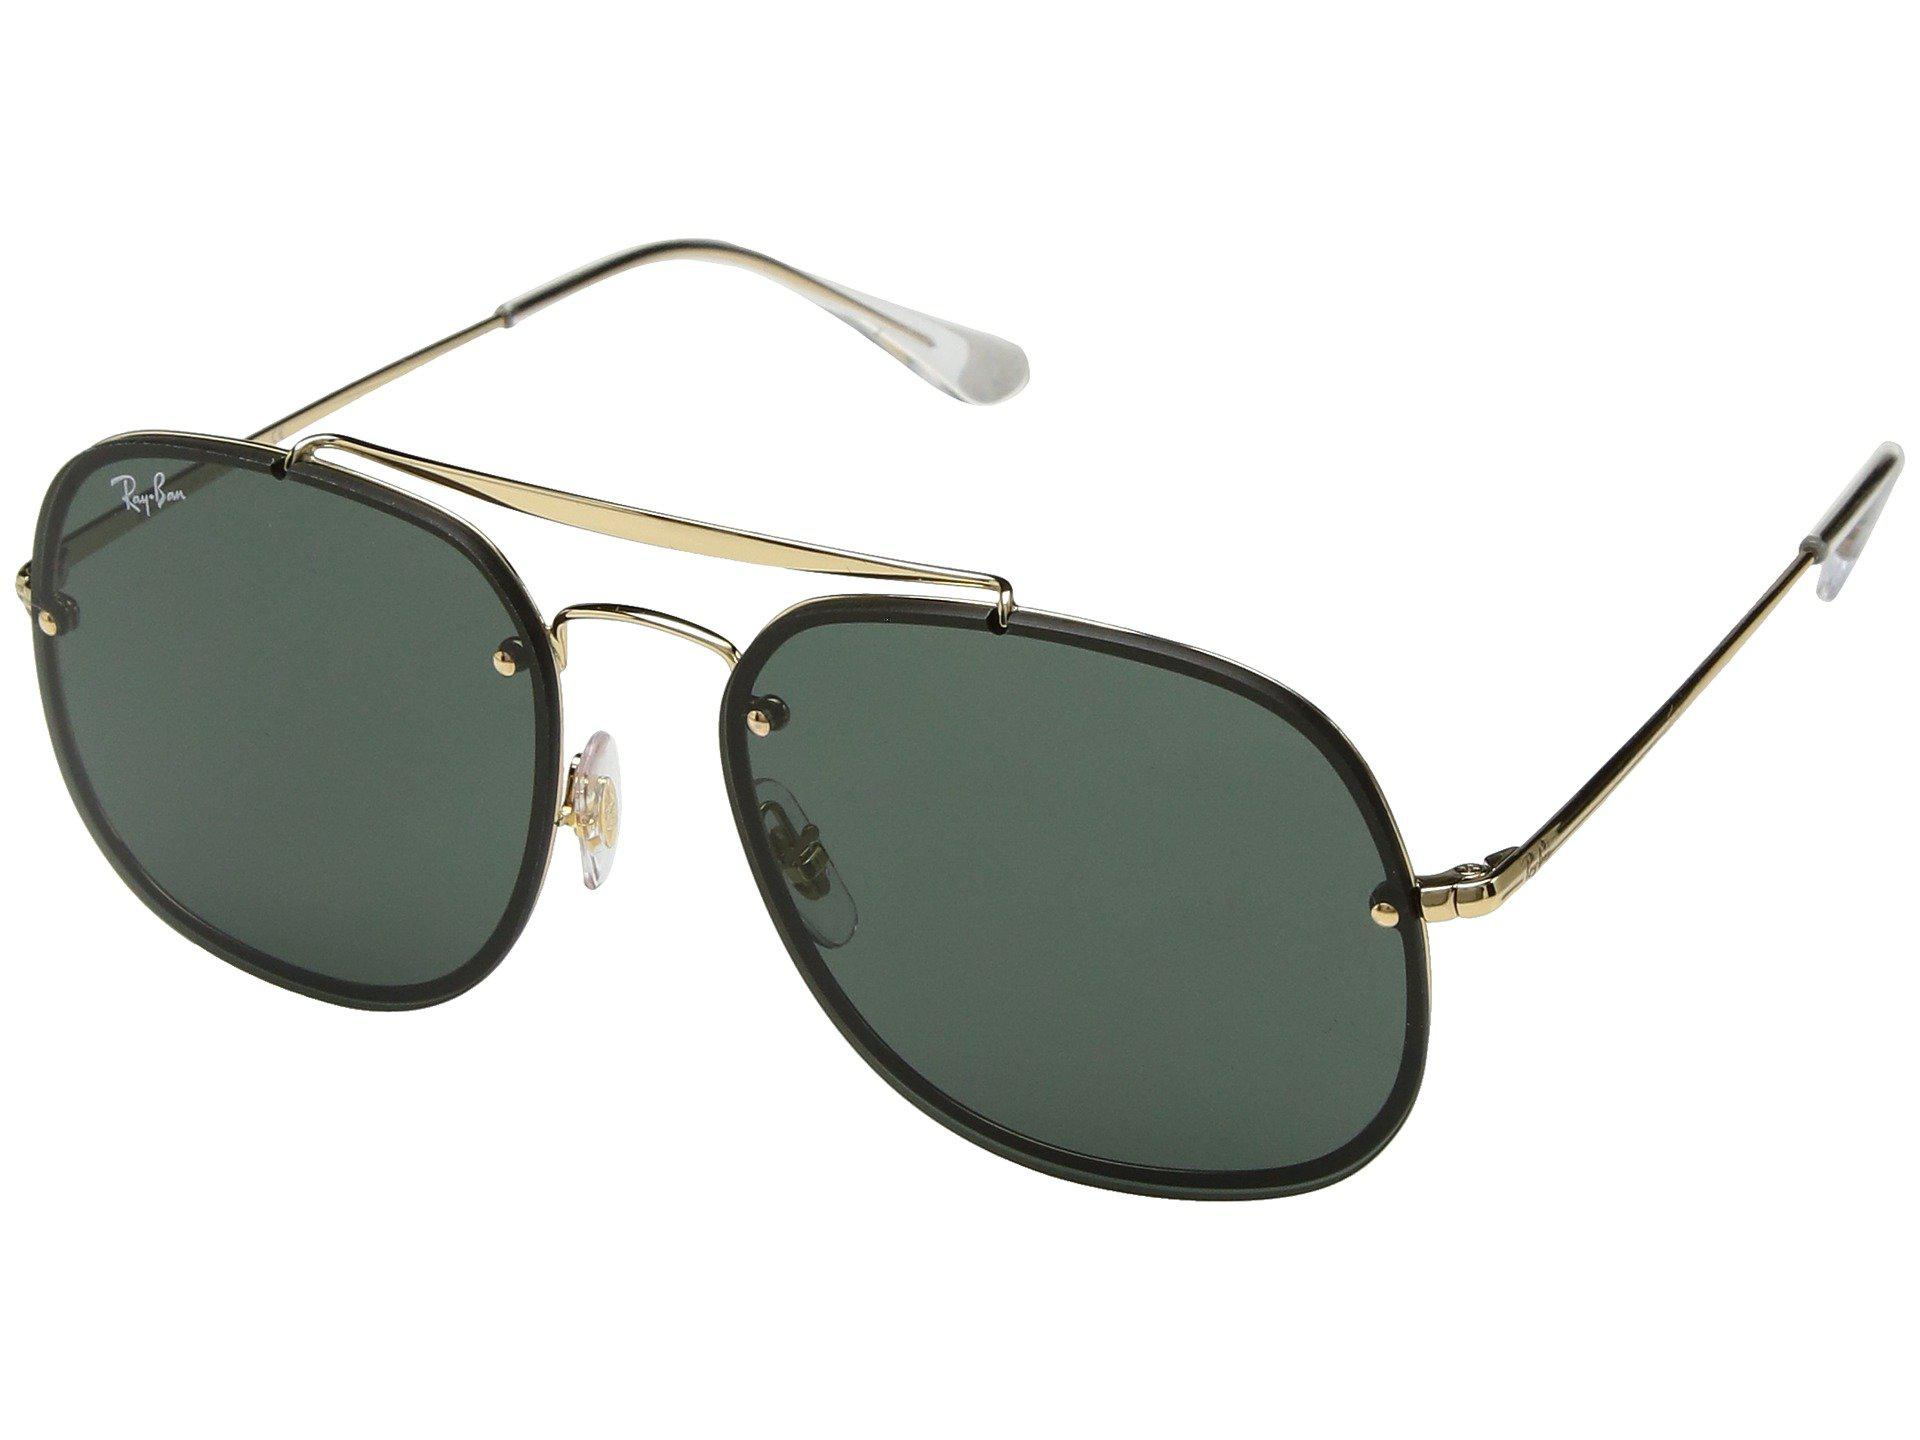 d8cea16777 Ray-Ban. Women s Green Blaze General Rb3583n 58mm (gunmetal brown Gradient) Fashion  Sunglasses